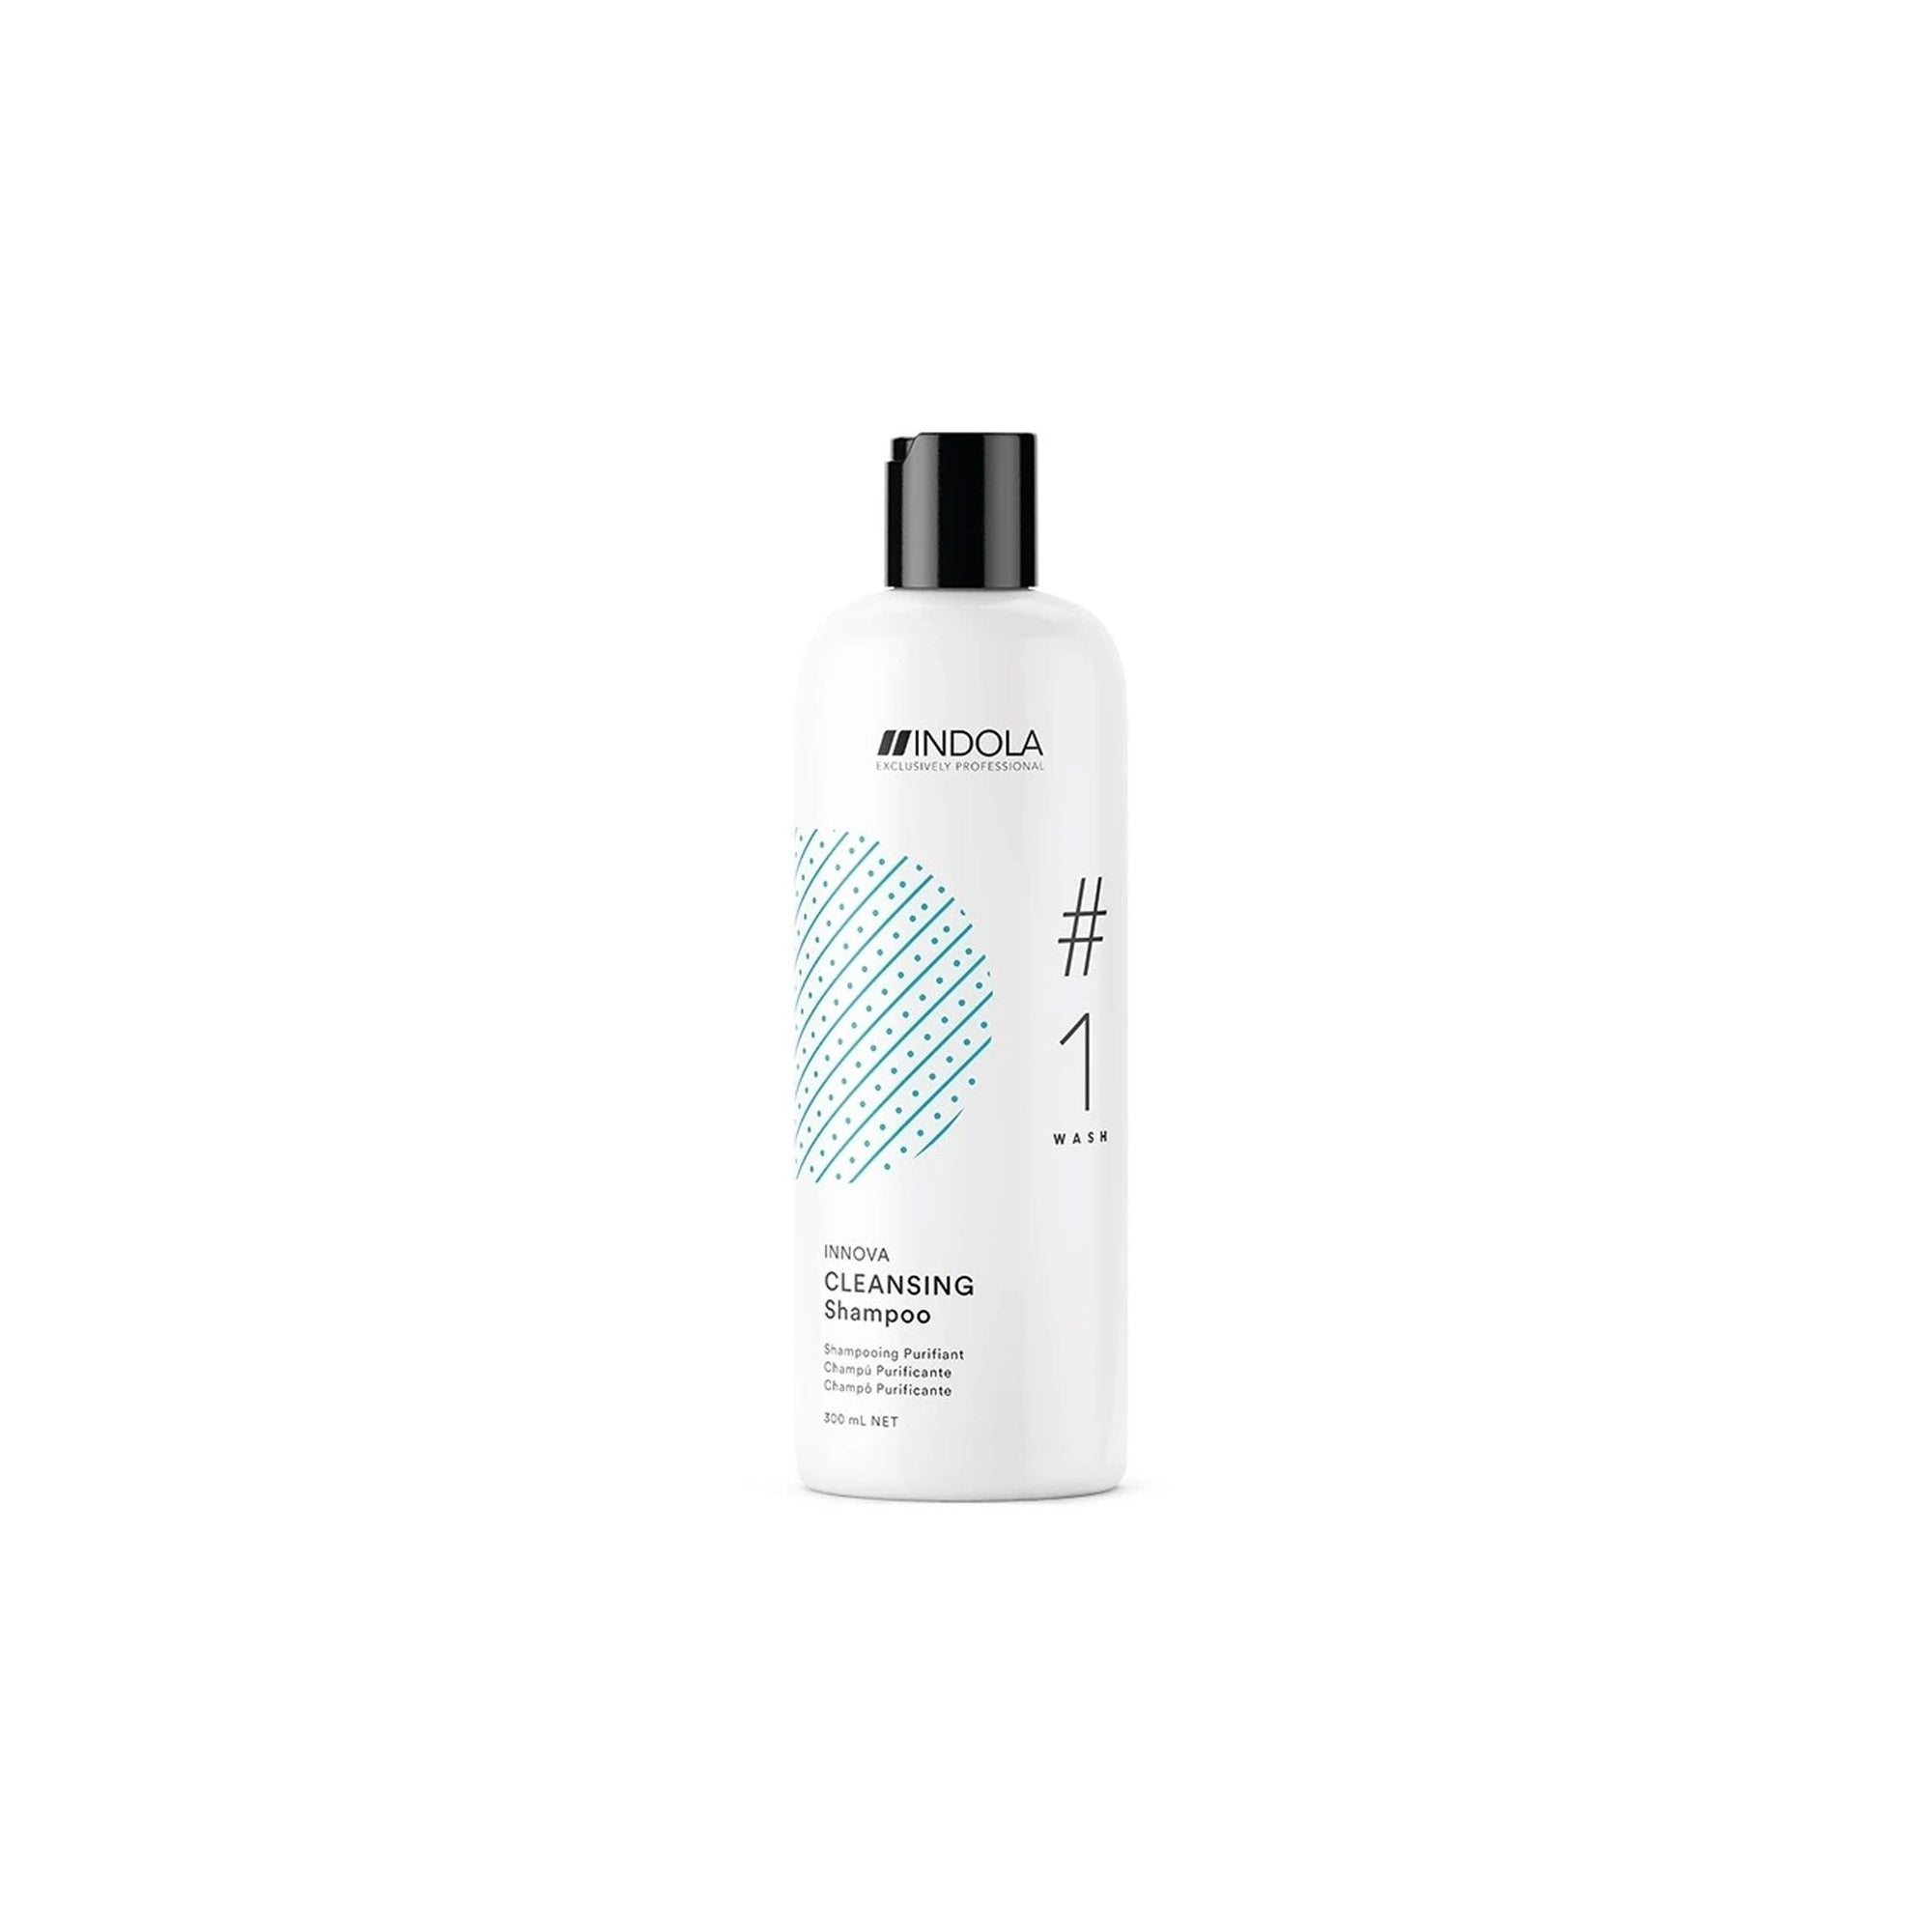 Indola Innova Cleansing Shampoo 300ml